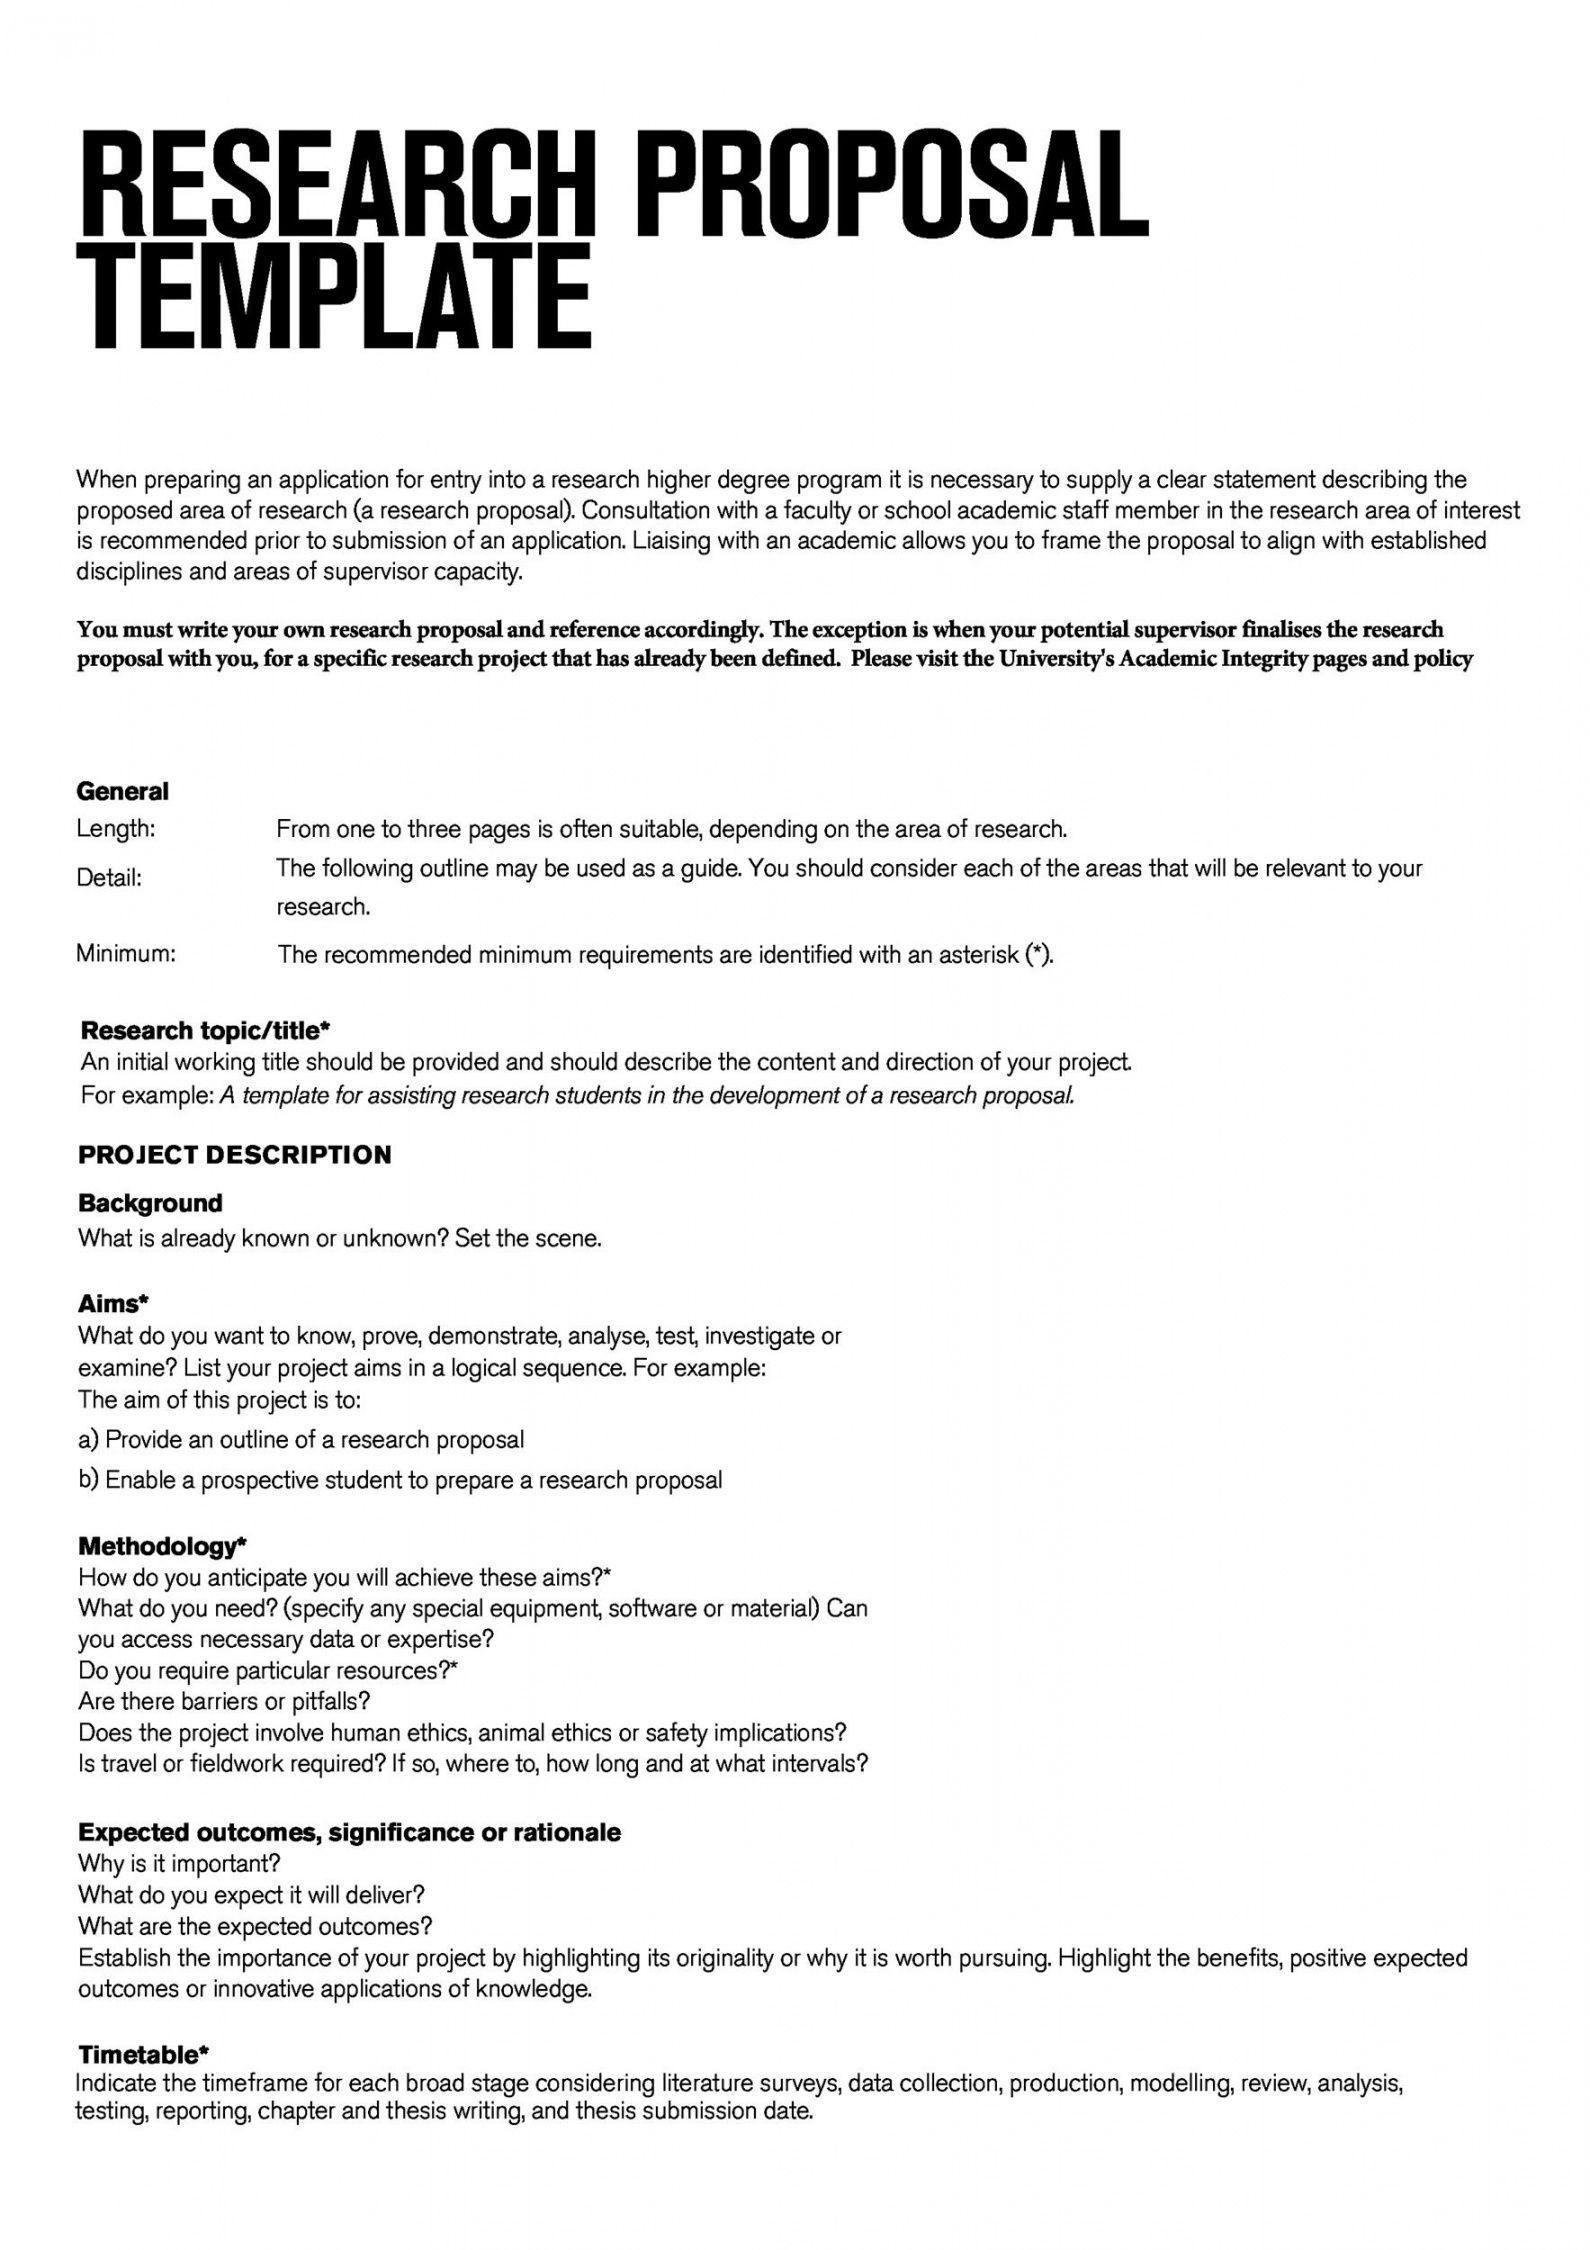 Scientific Project Proposal Template In